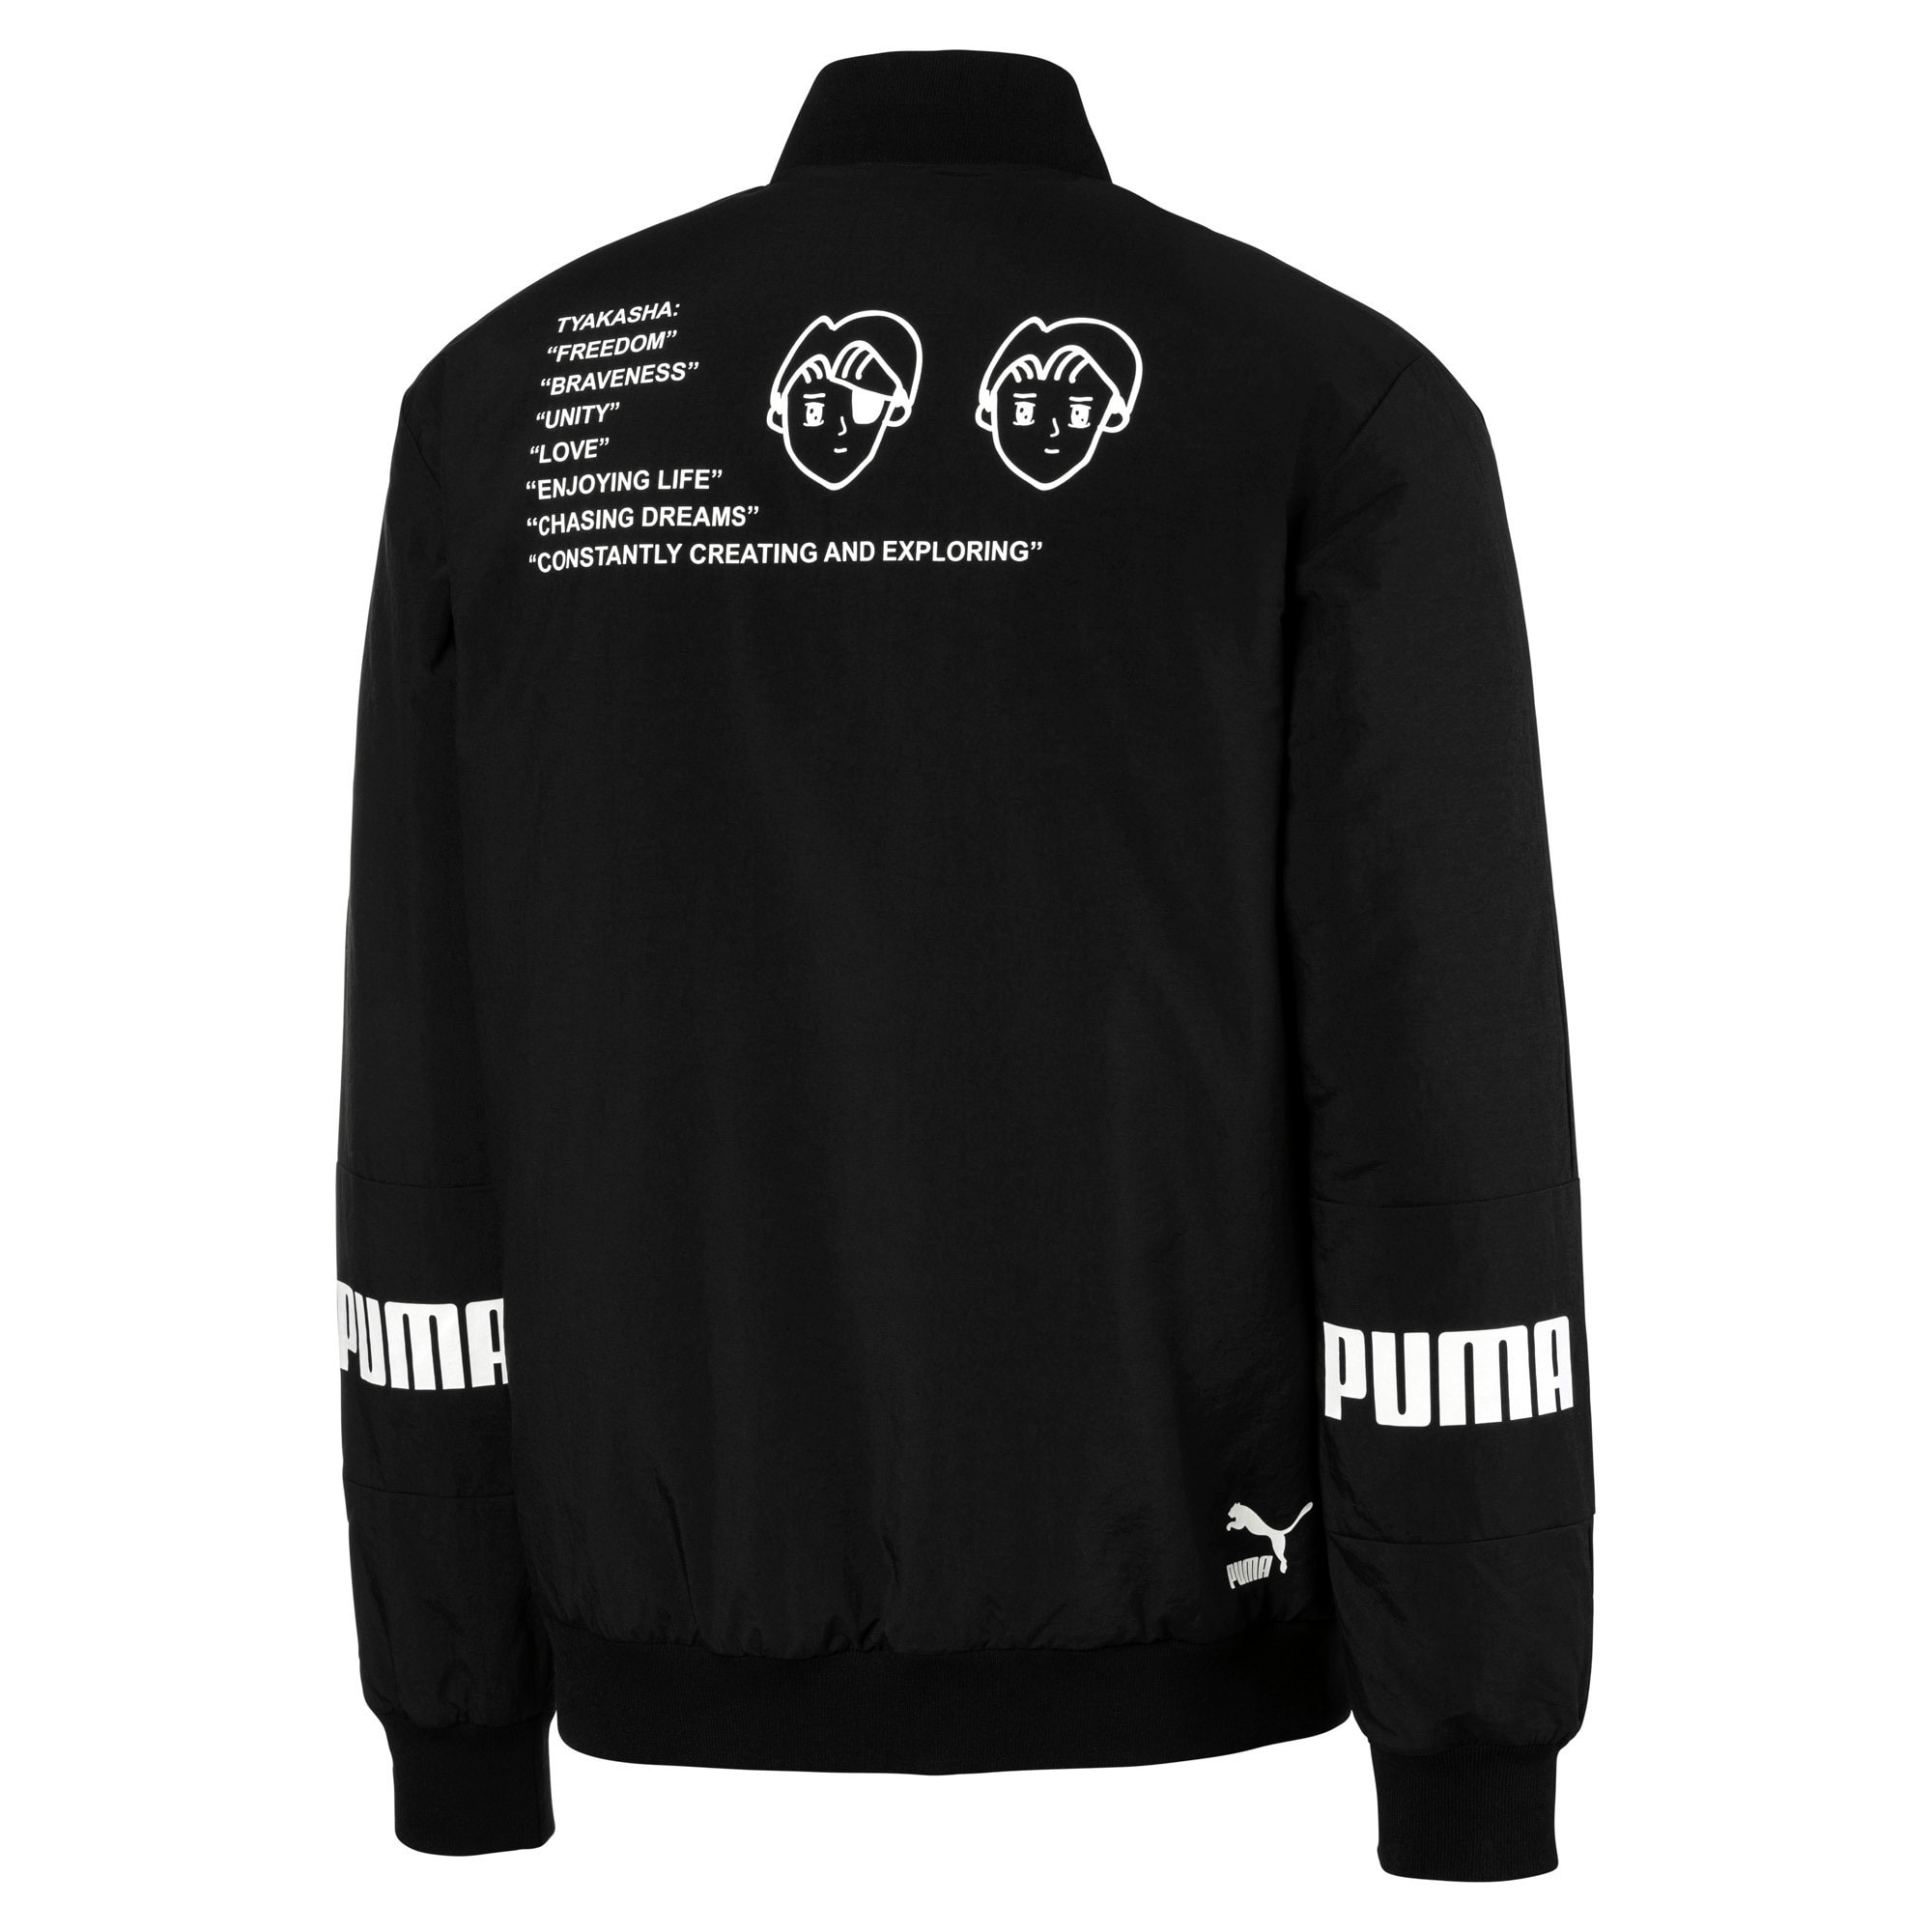 Thumbnail 5 of PUMA x TYAKASHA Woven Bomber Jacket, Puma Black, medium